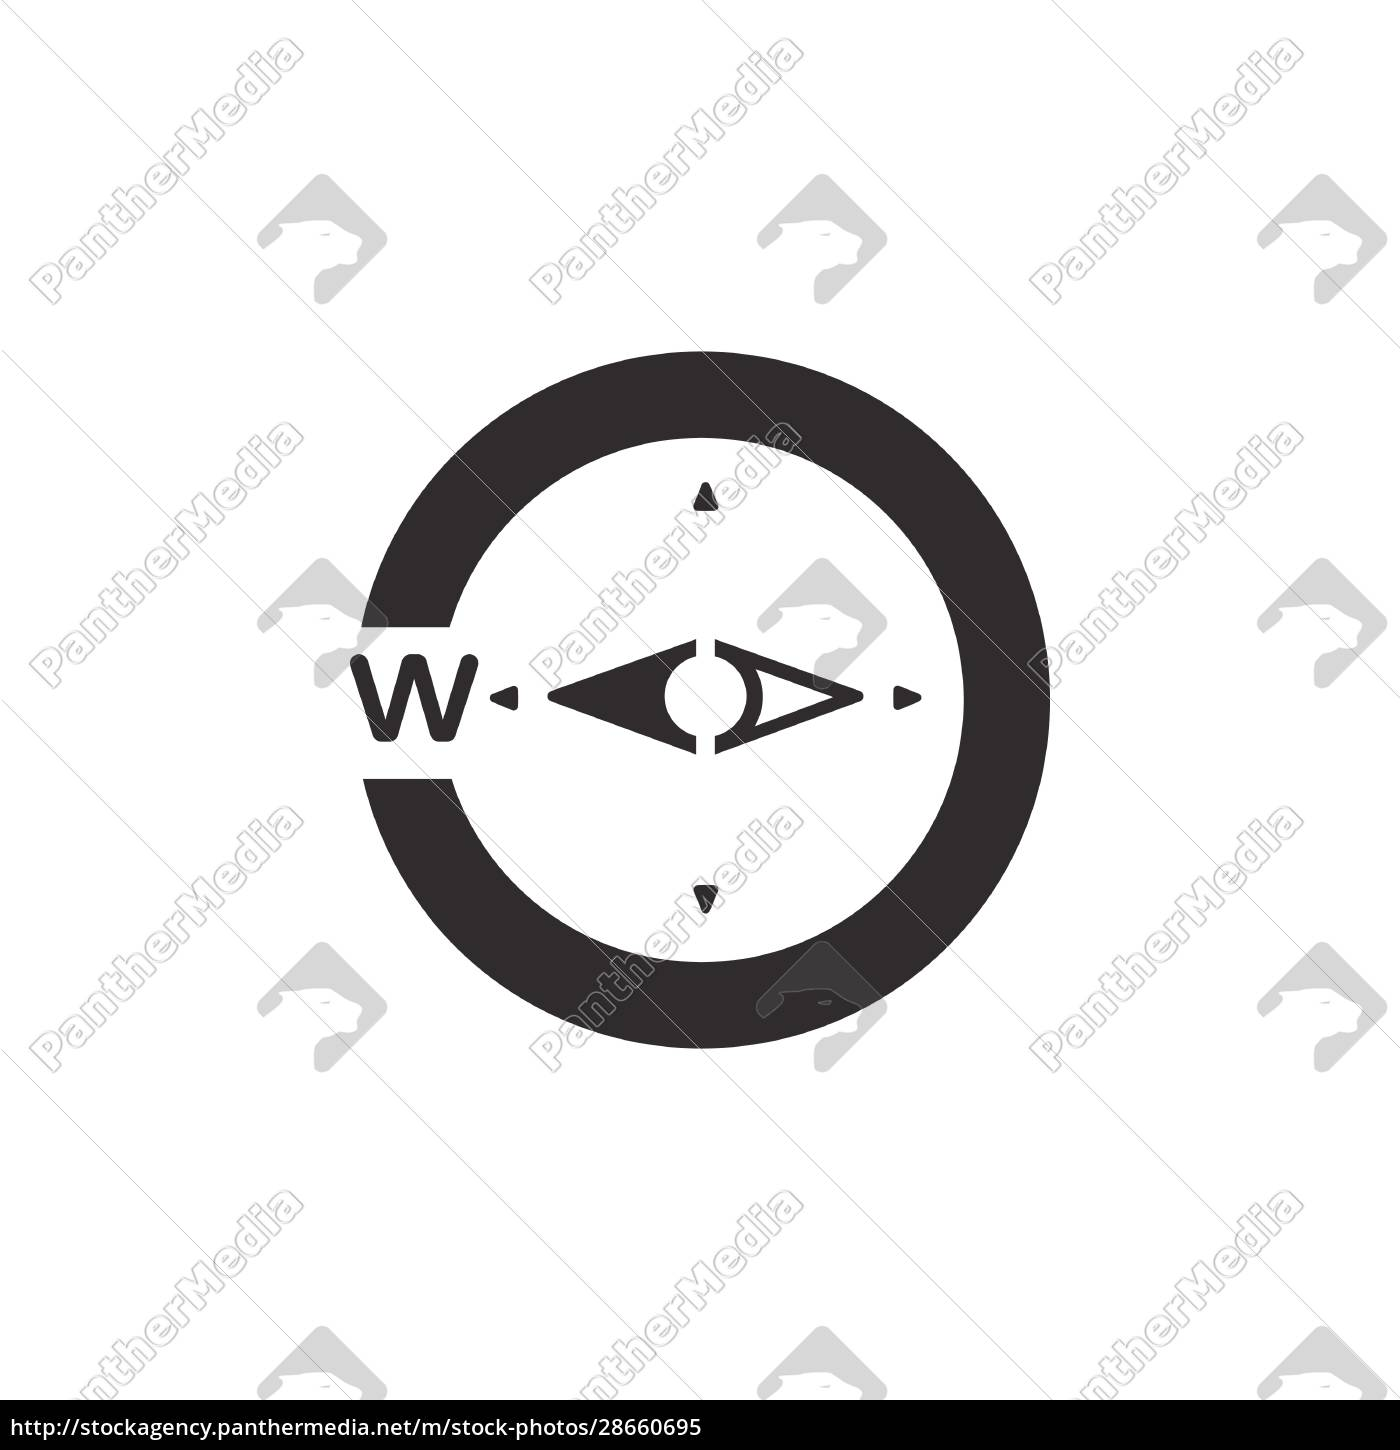 compass., west, direction., icon., weather, glyph - 28660695